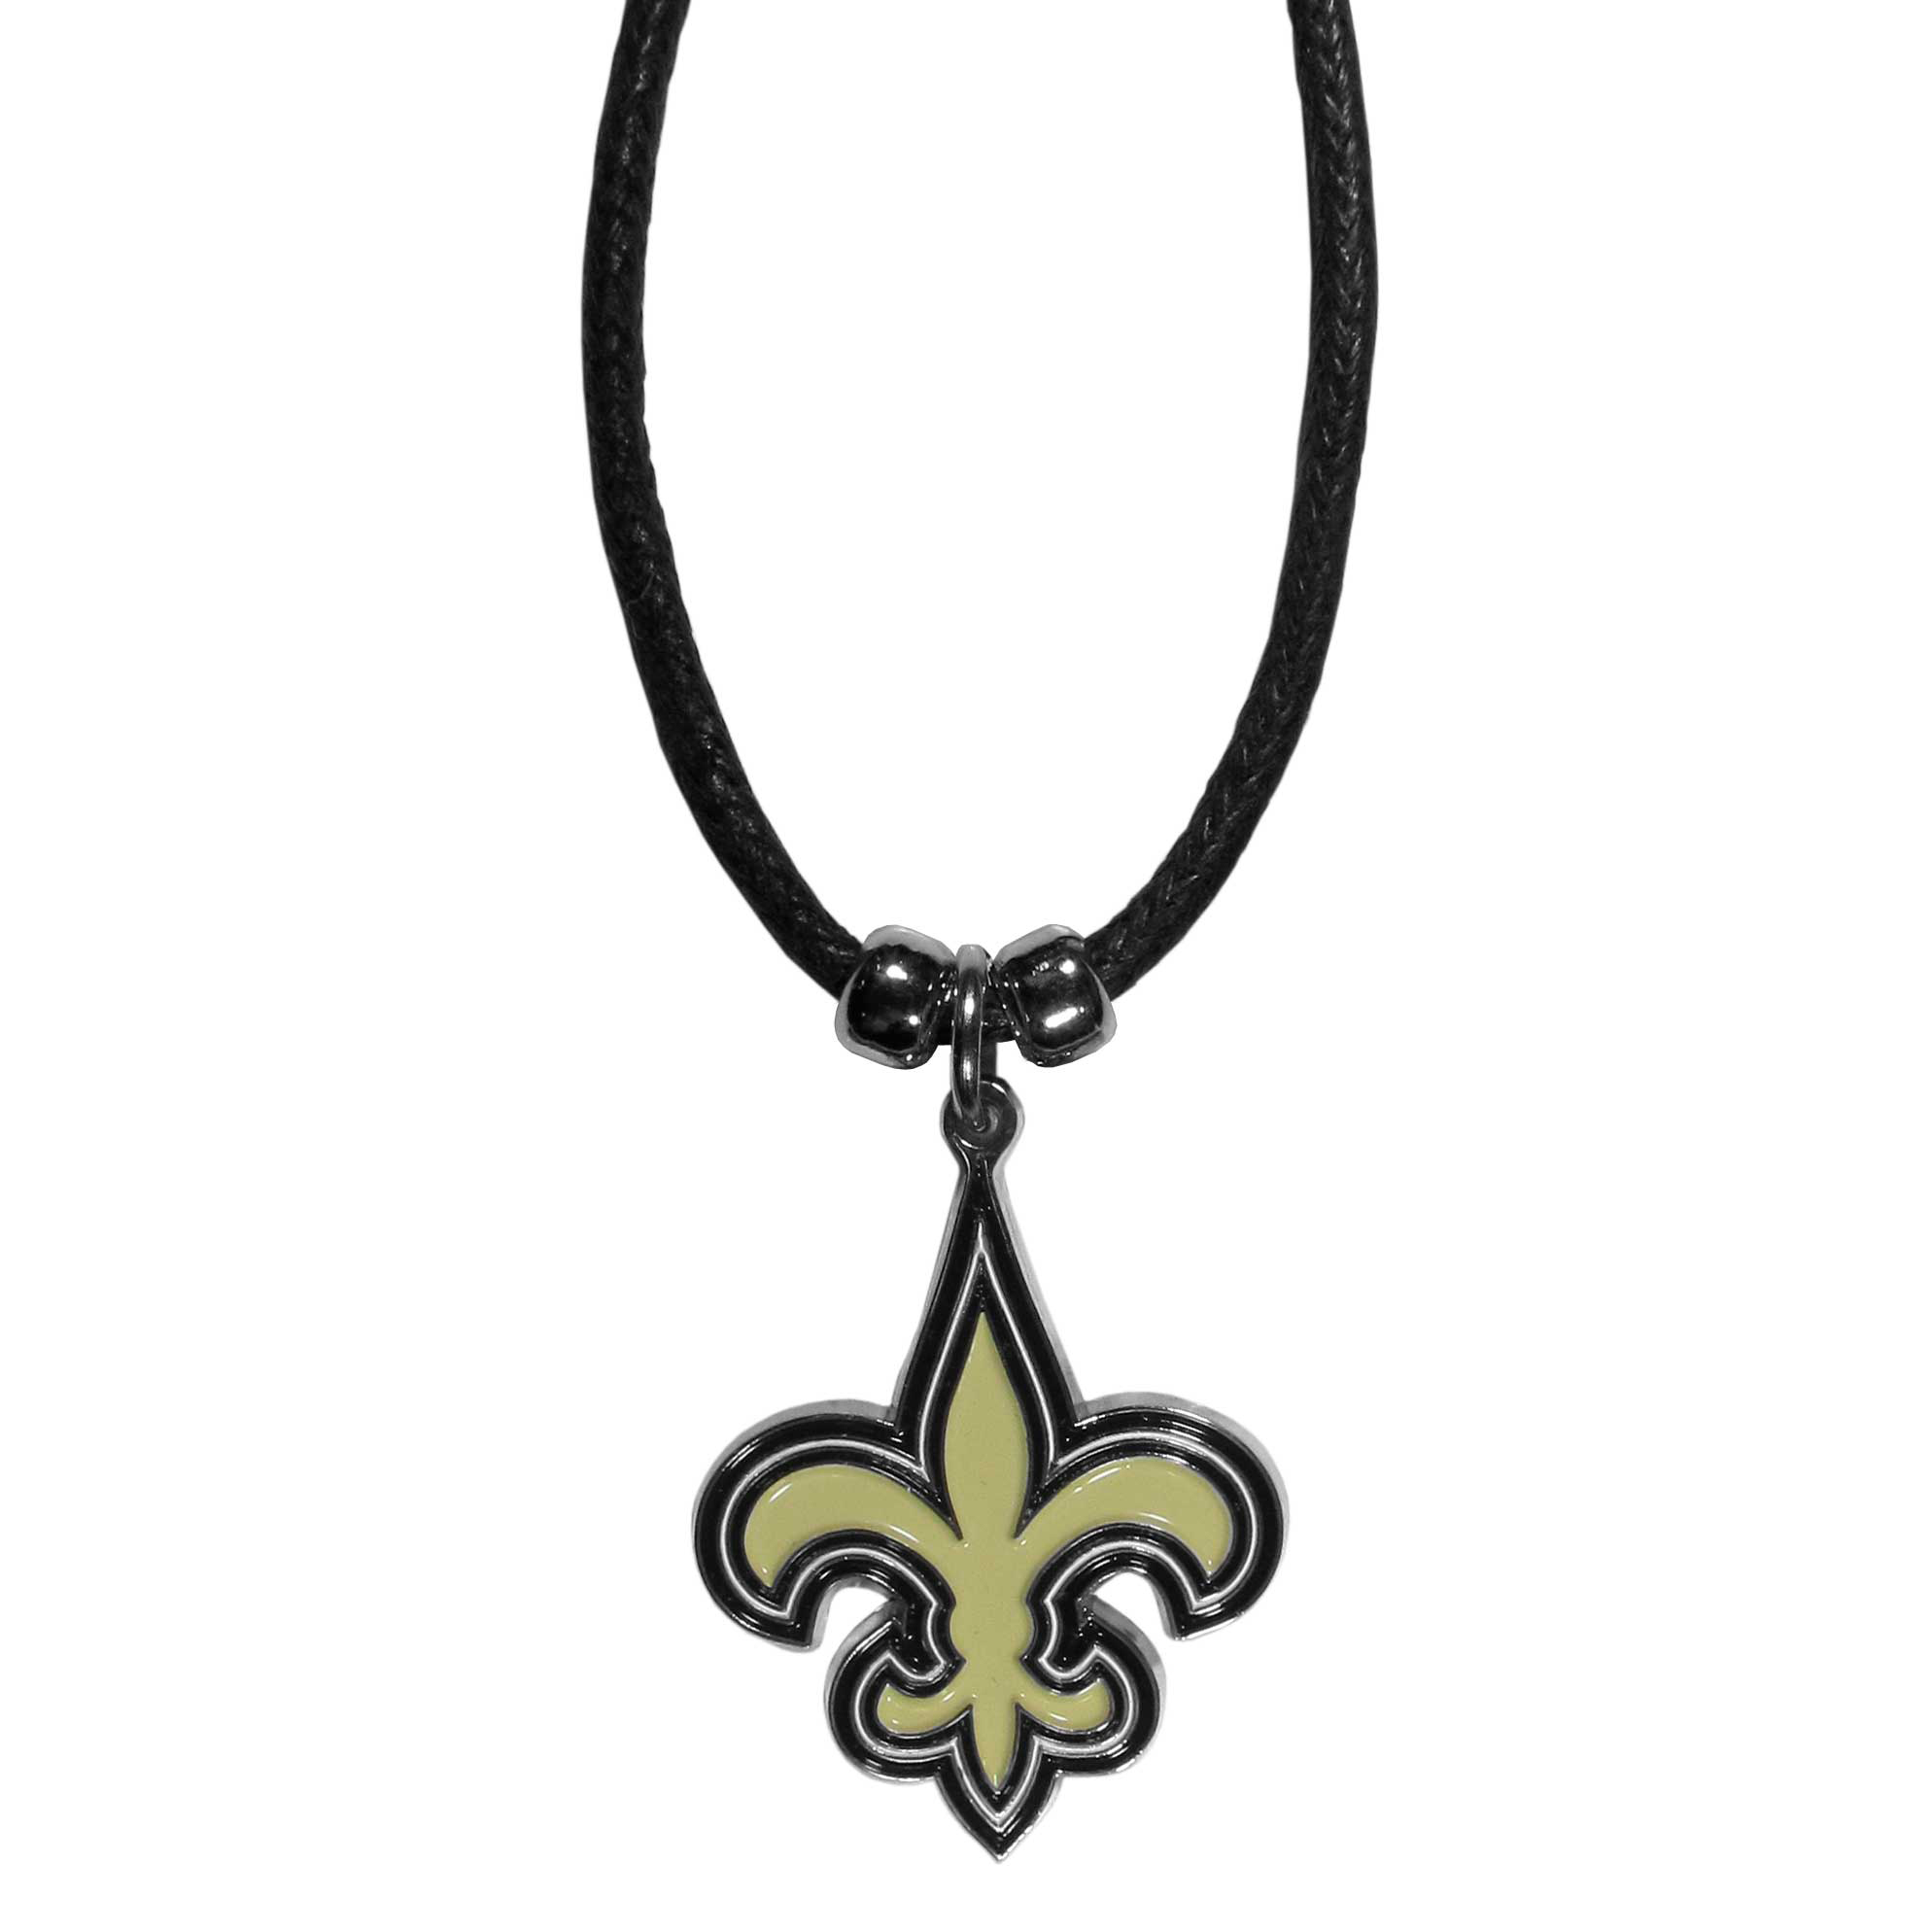 New Orleans Saints Cord Necklace - This classic style cotton cord necklace features an extra large New Orleans Saints pendant on a 21 inch cord.